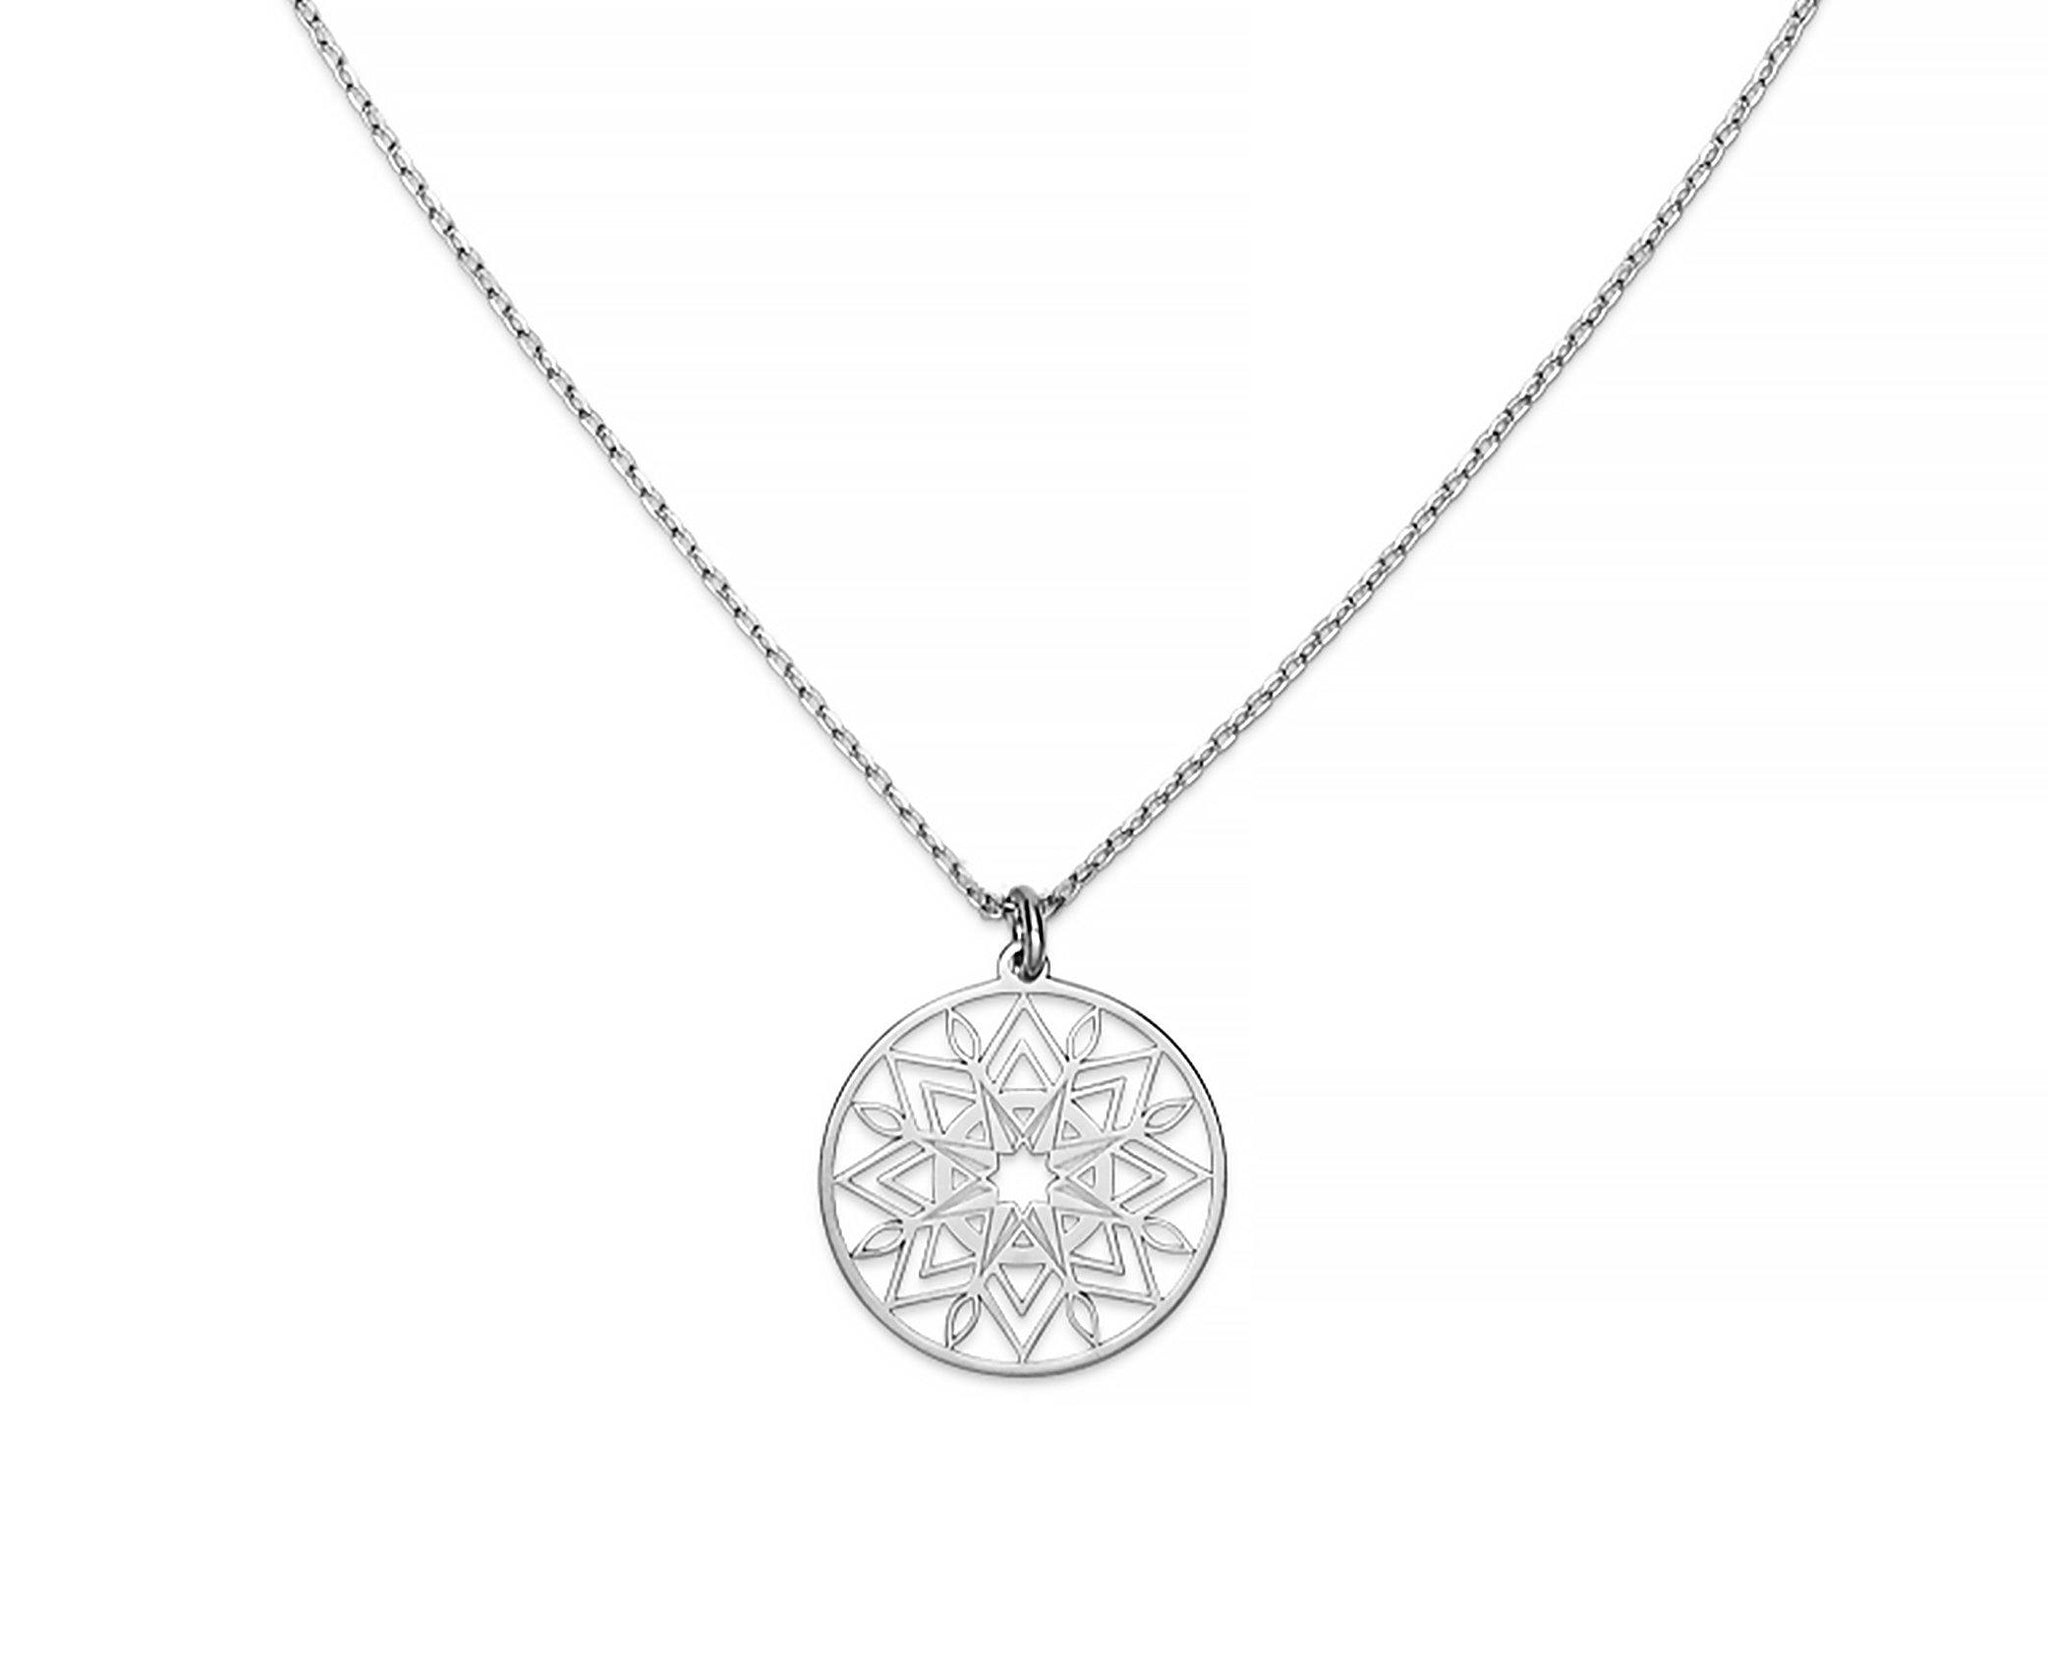 Polaris Mandala Necklace - InclusiveJewelry